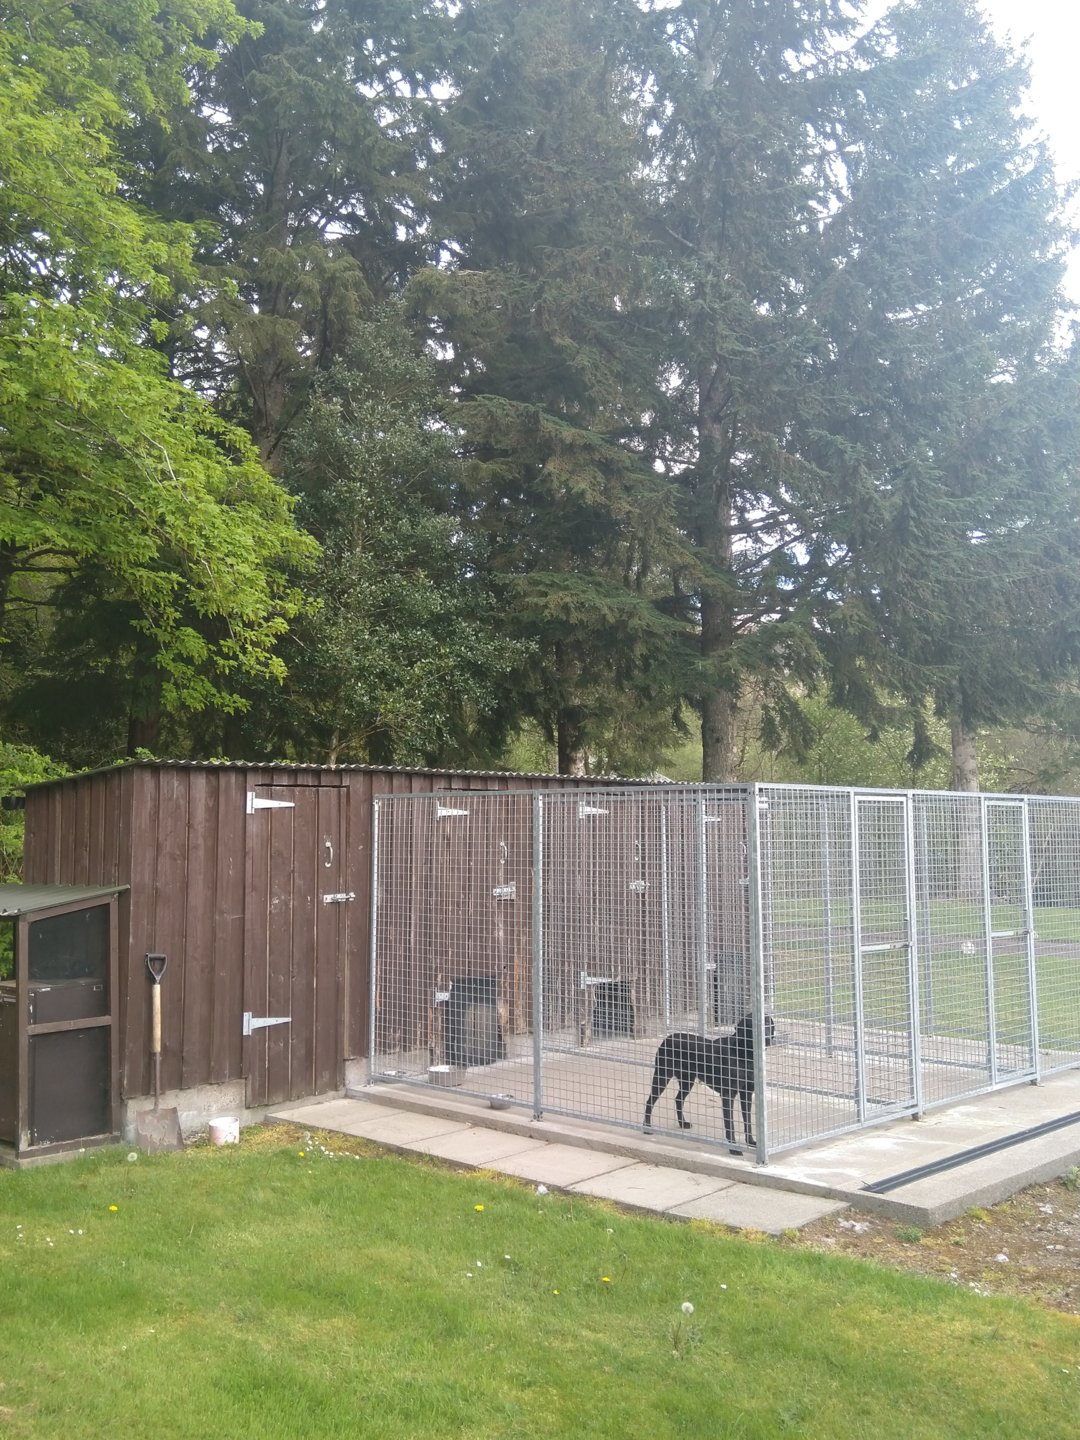 Dog kennel and run designs | The Farming Forum